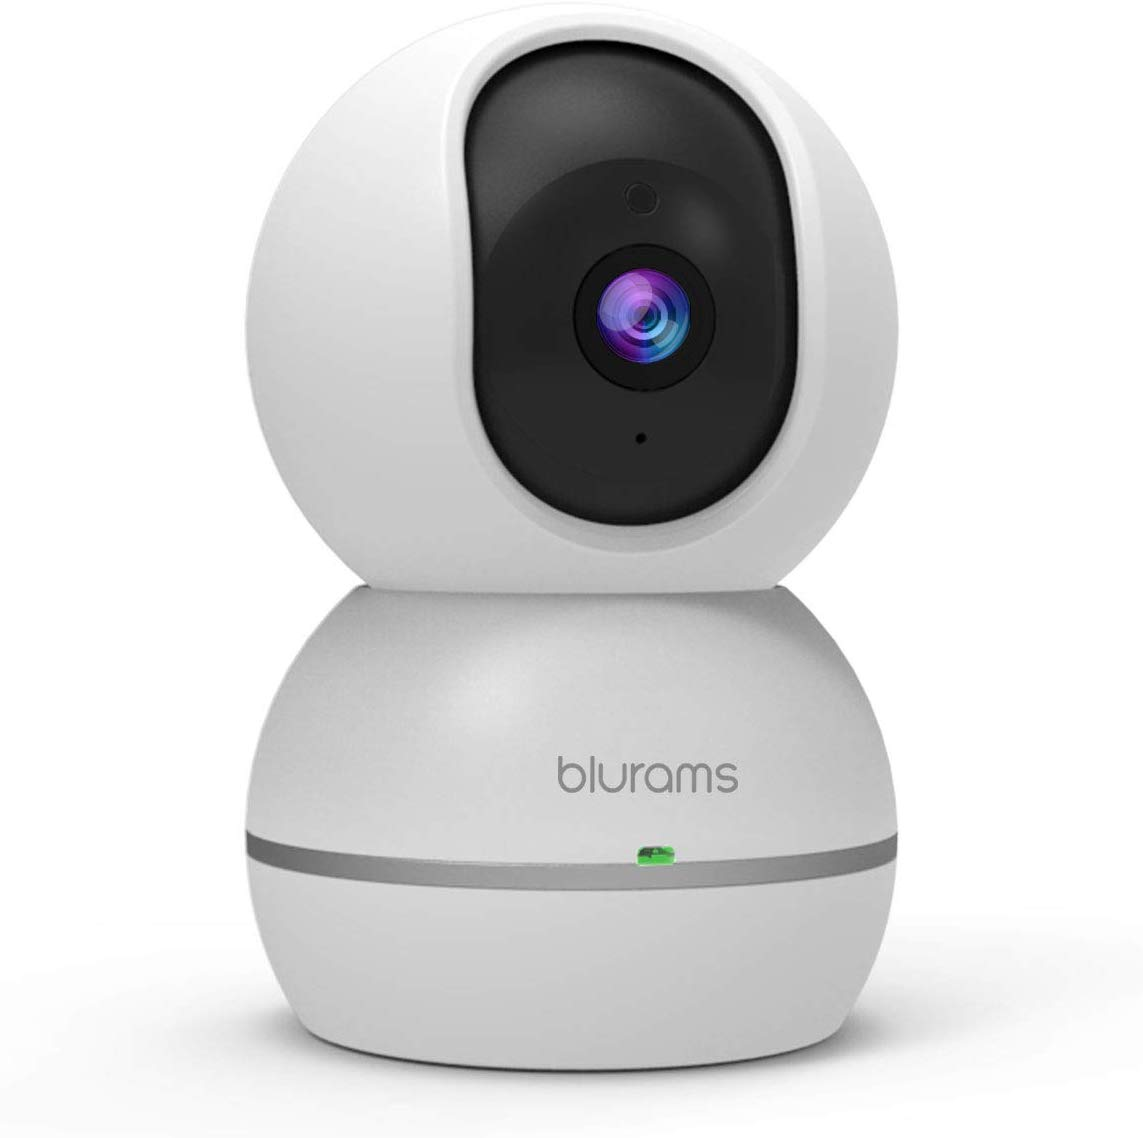 blurams 1080p Dome Security Camera | PTZ Surveillance System with Motion/Sound Detection